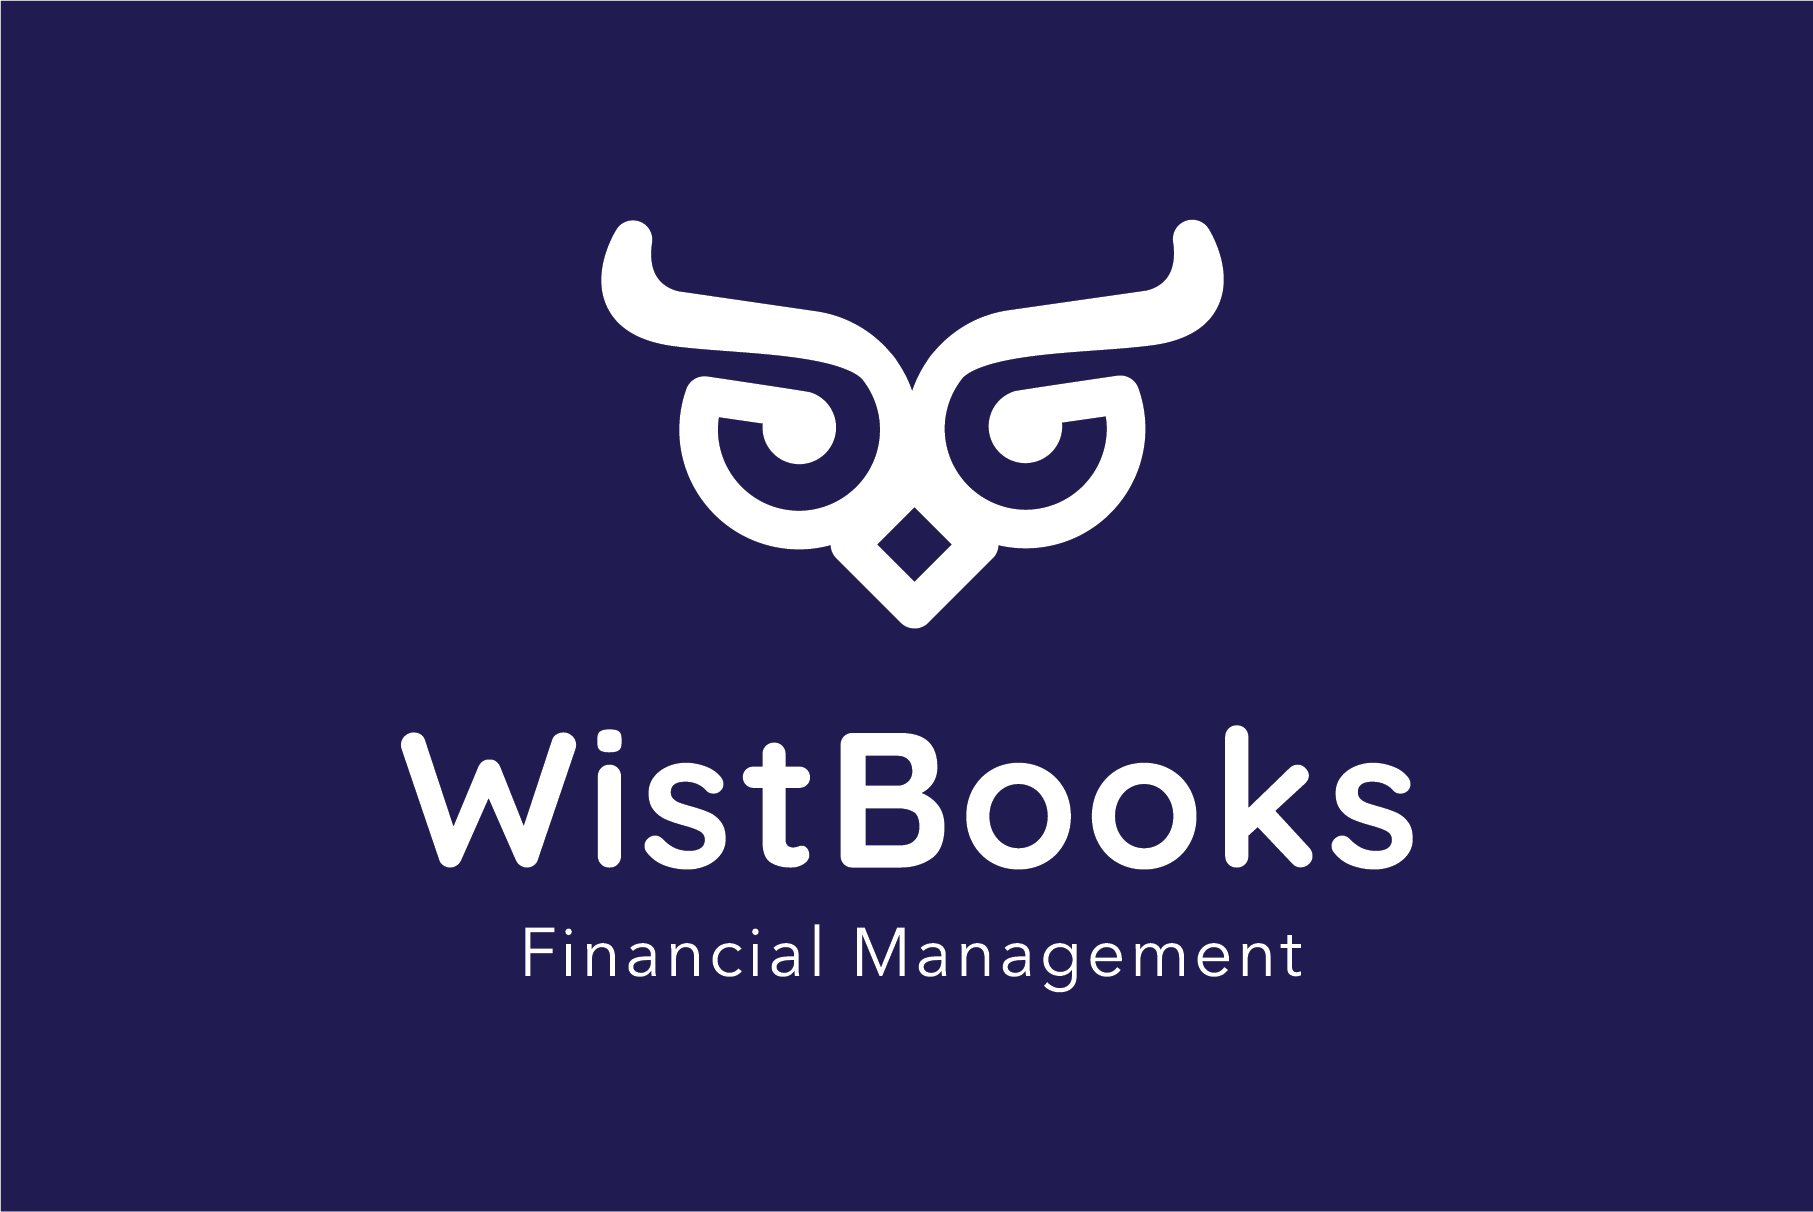 WistBooks Financial Management